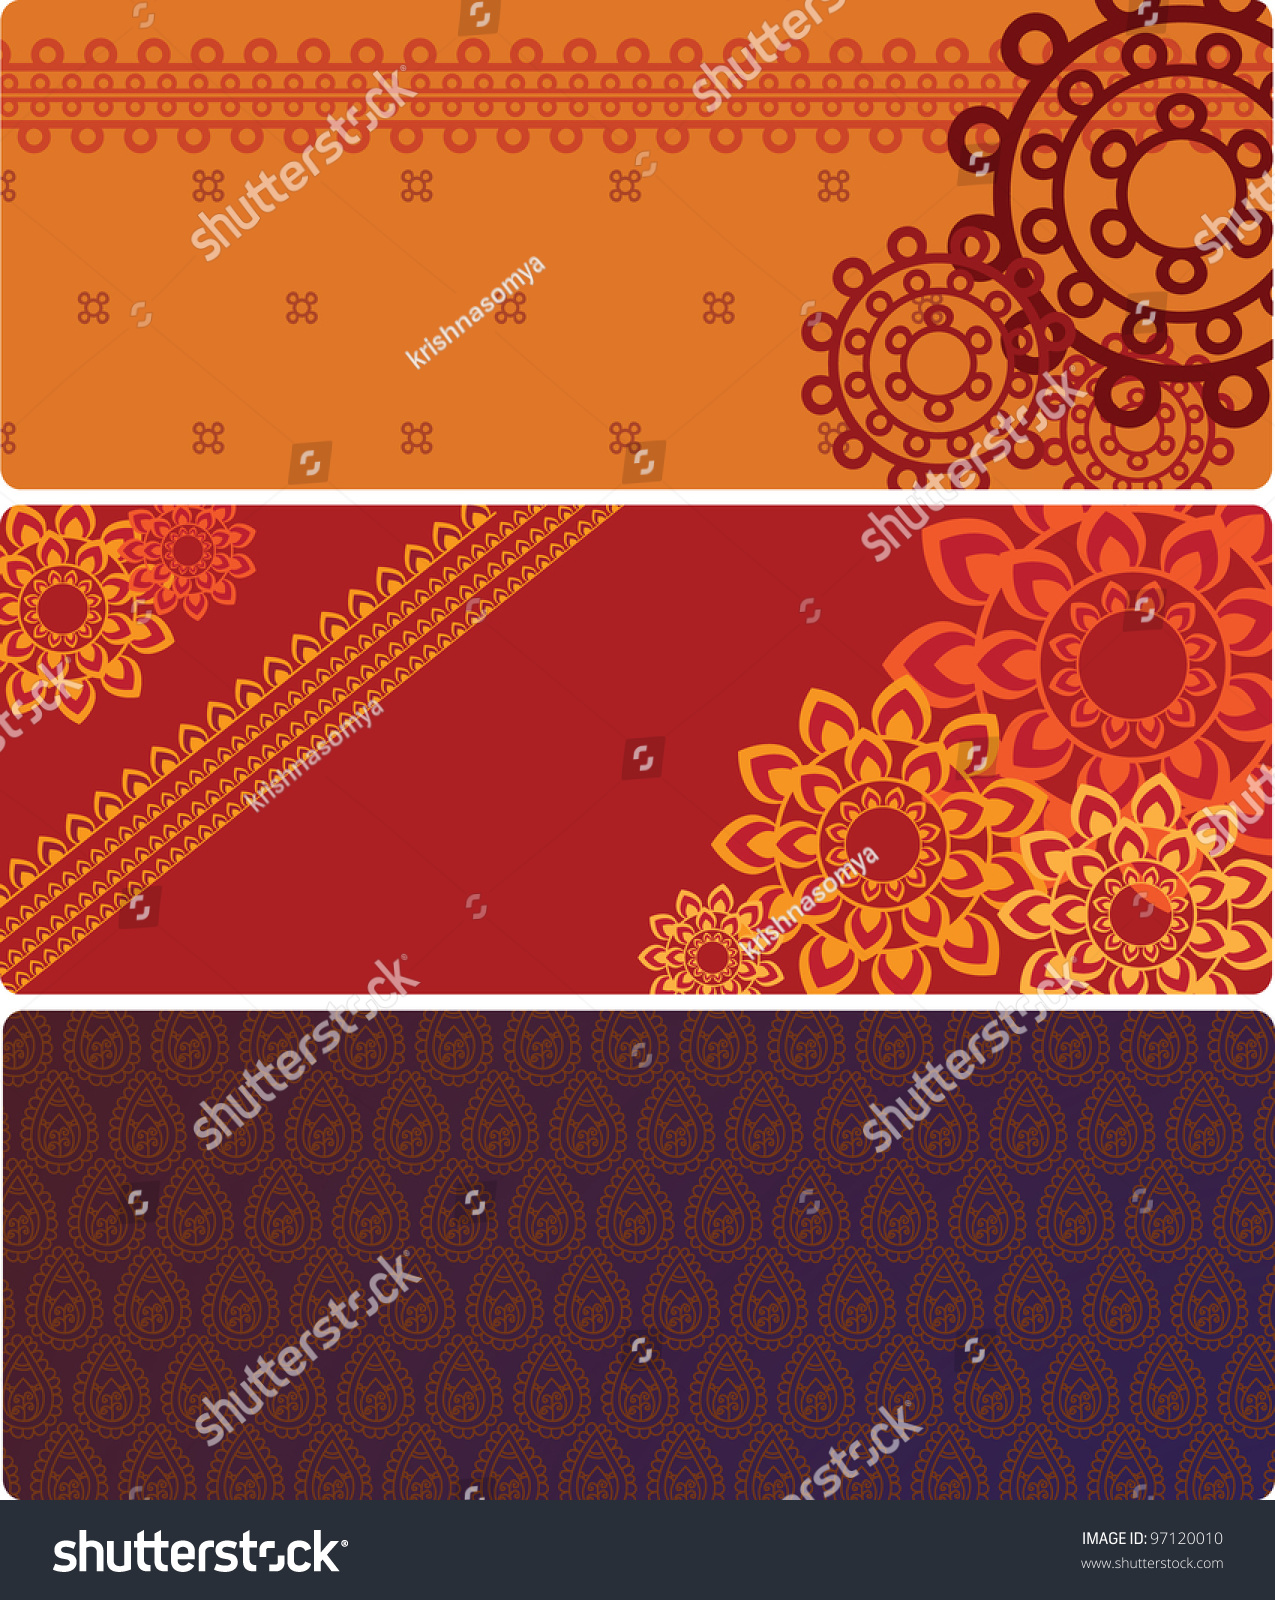 henna inspired banners borders - photo #33